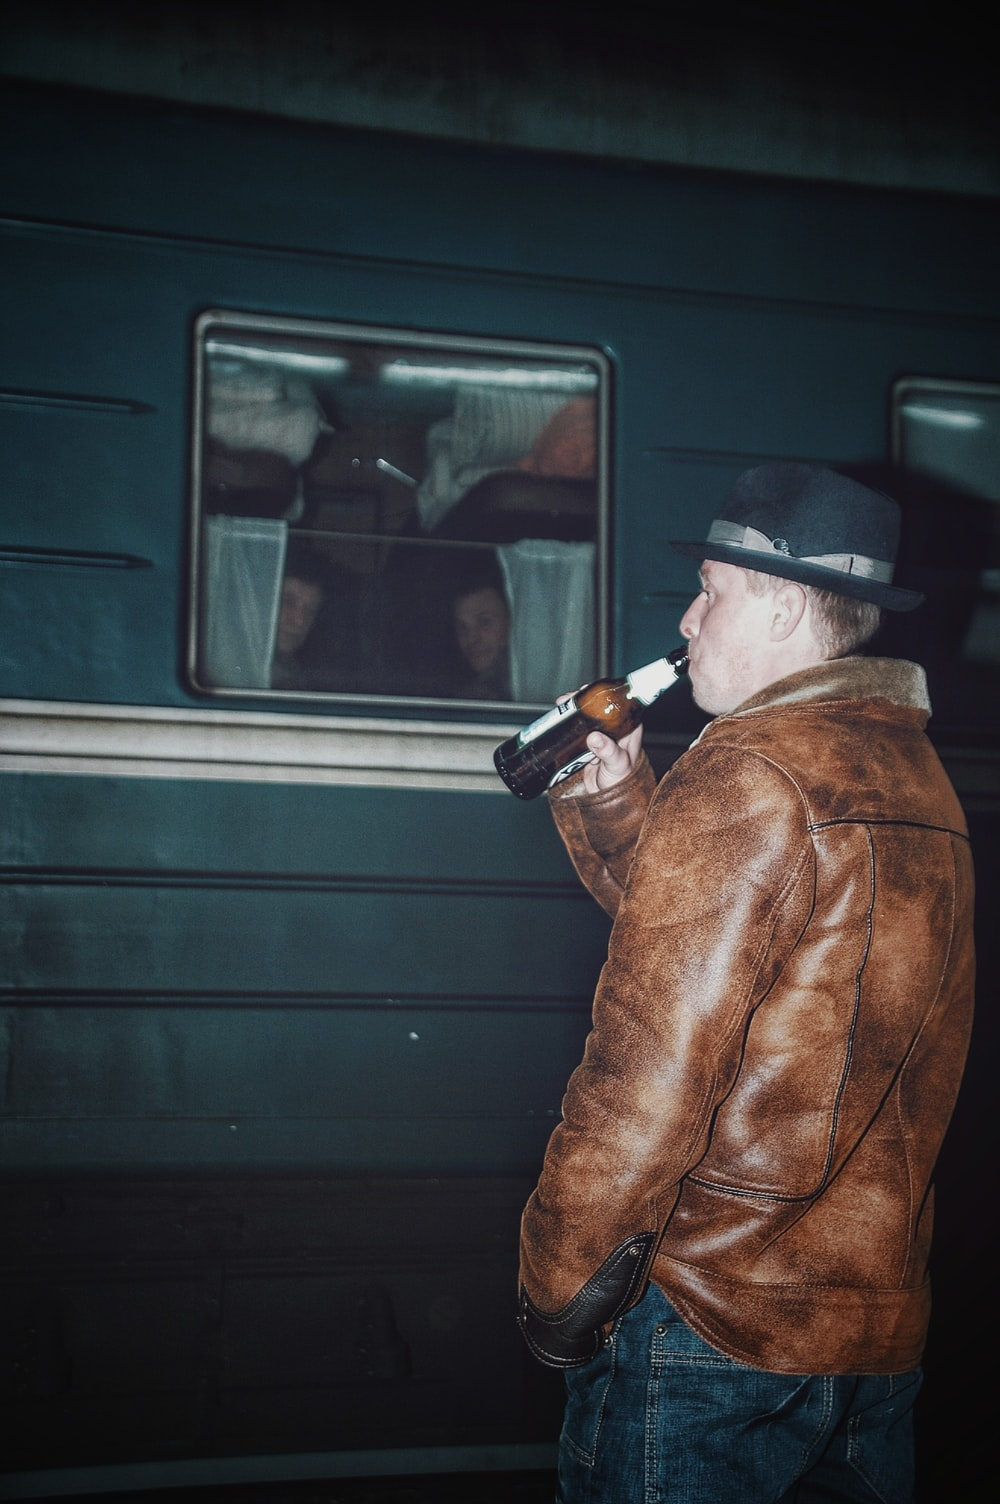 man wearing brown leather jacket drinking beer